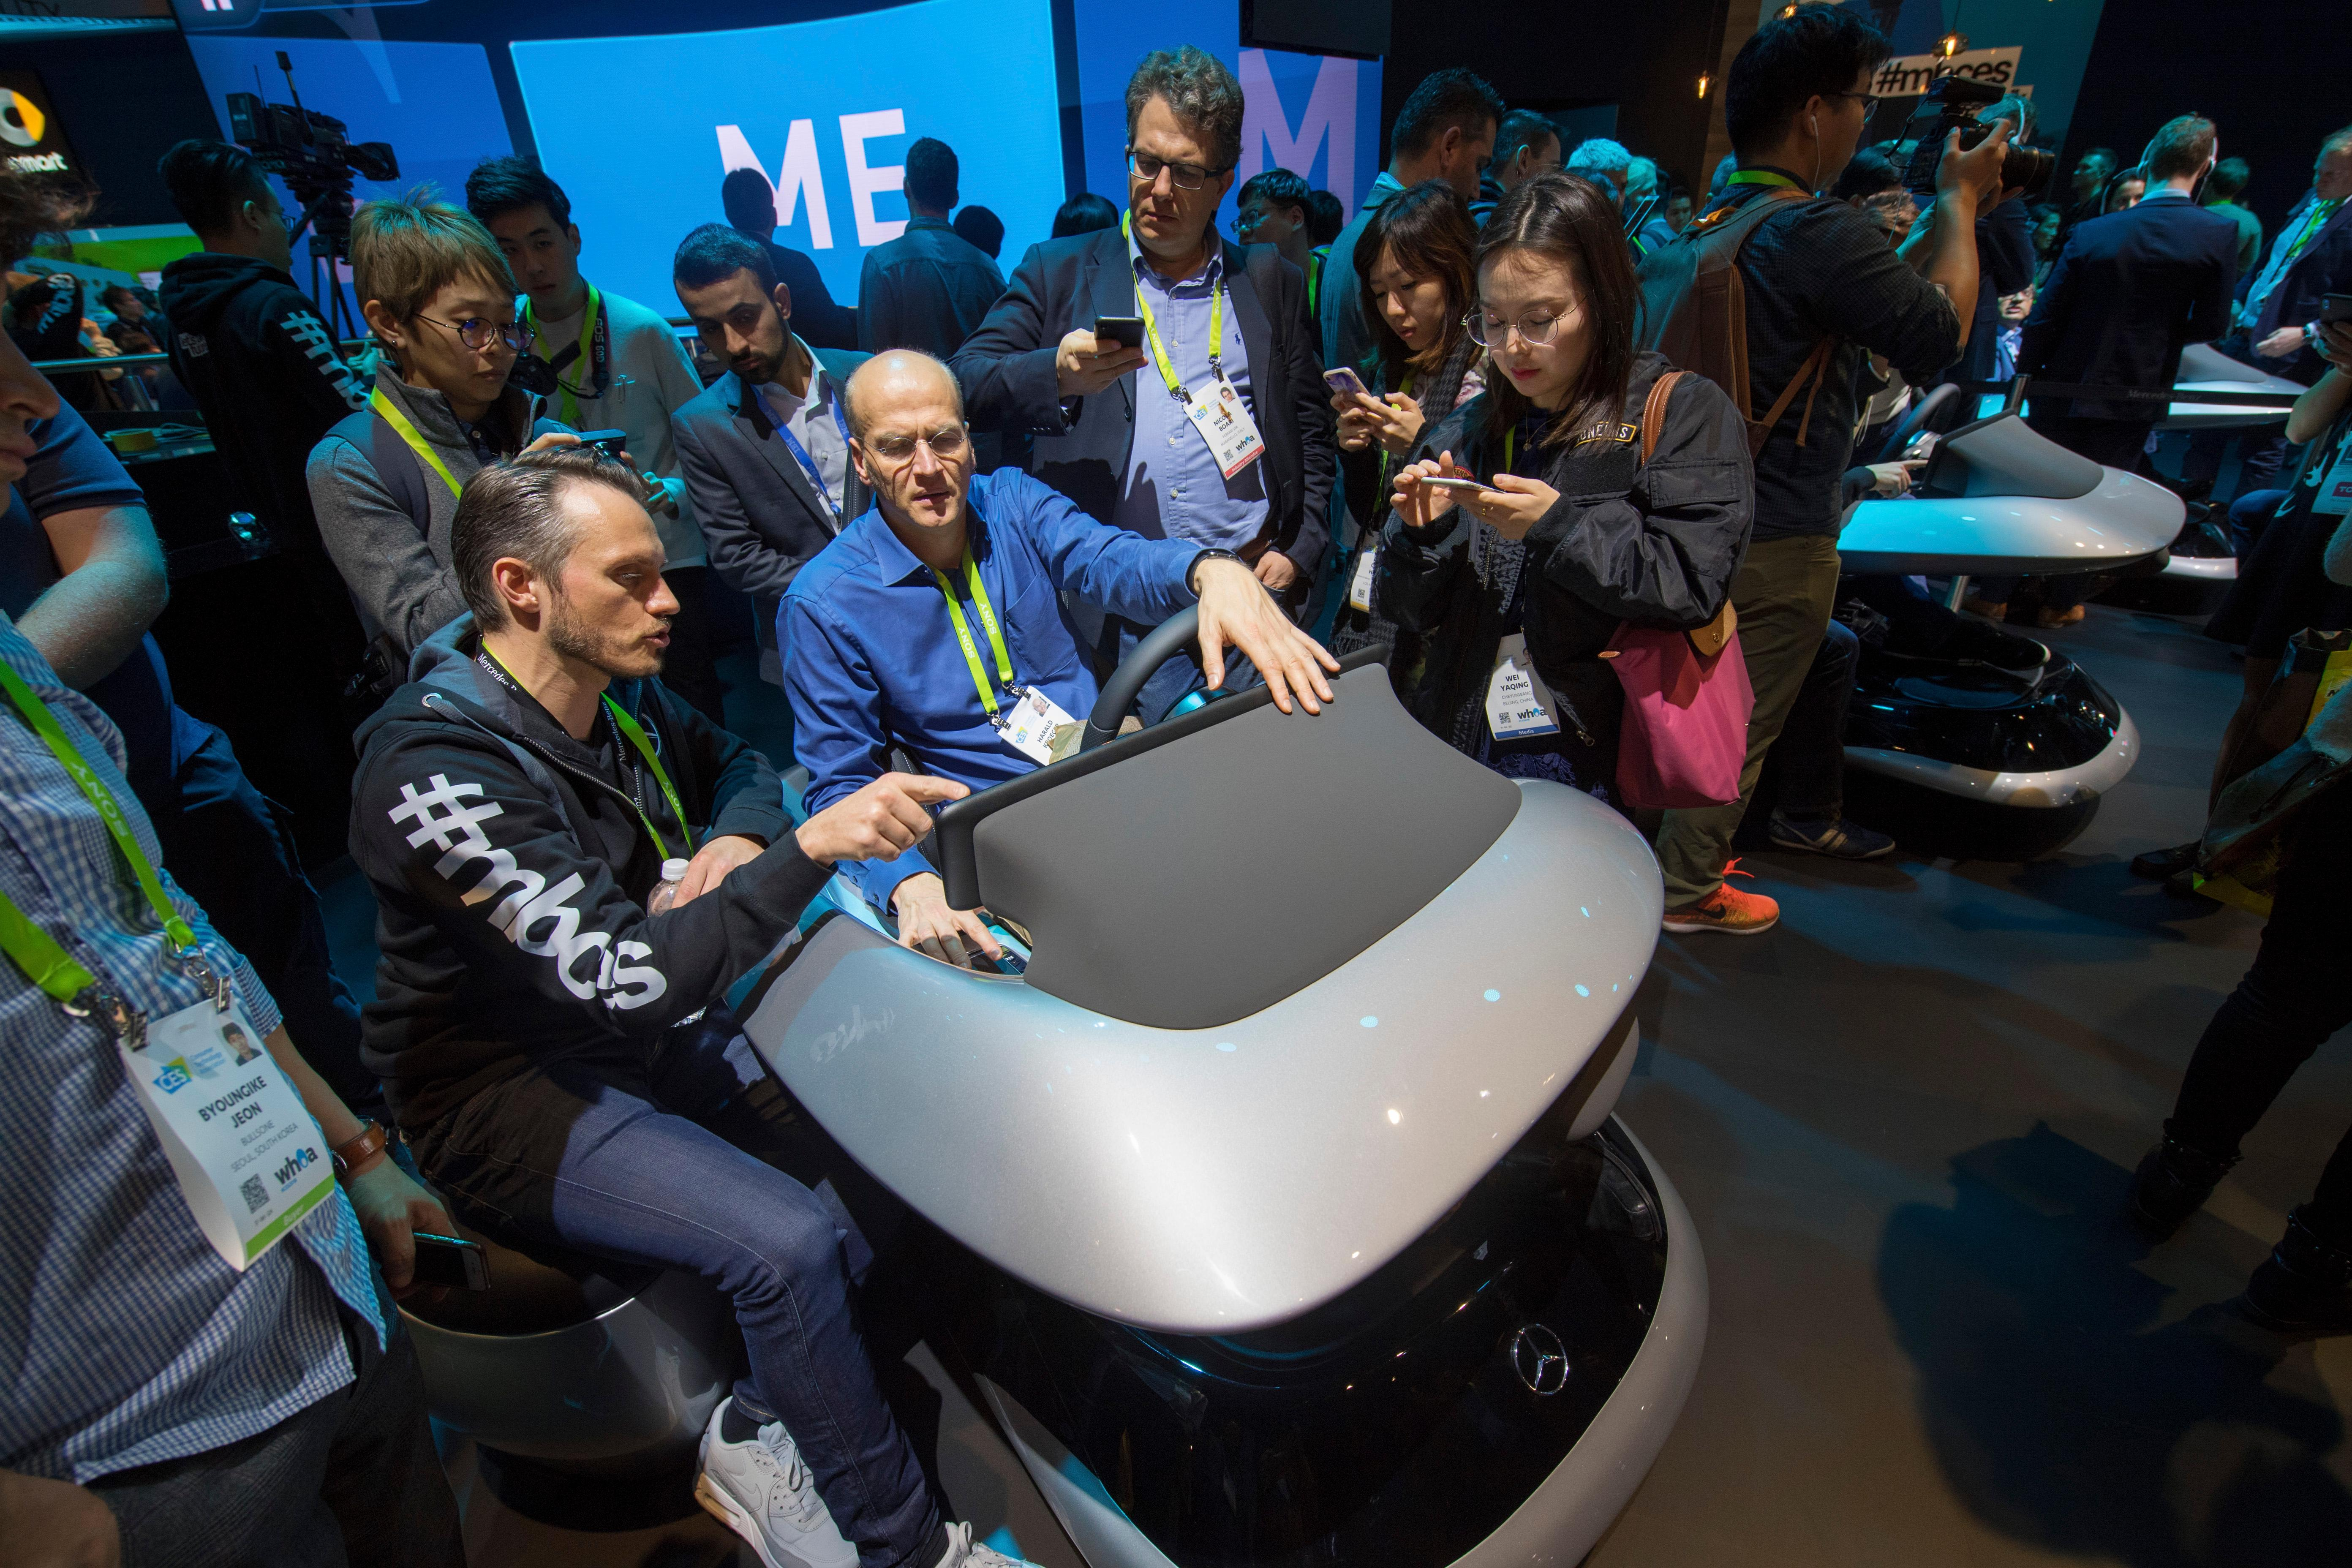 Tobias Kiefer from Mercedes demonstrates an automobile cockpit of the near future to Harold Kroeger during the second day of CES Wednesday, January 10, 2018, at the Las Vegas Convention Center. CREDIT: Sam Morris/Las Vegas News Bureau